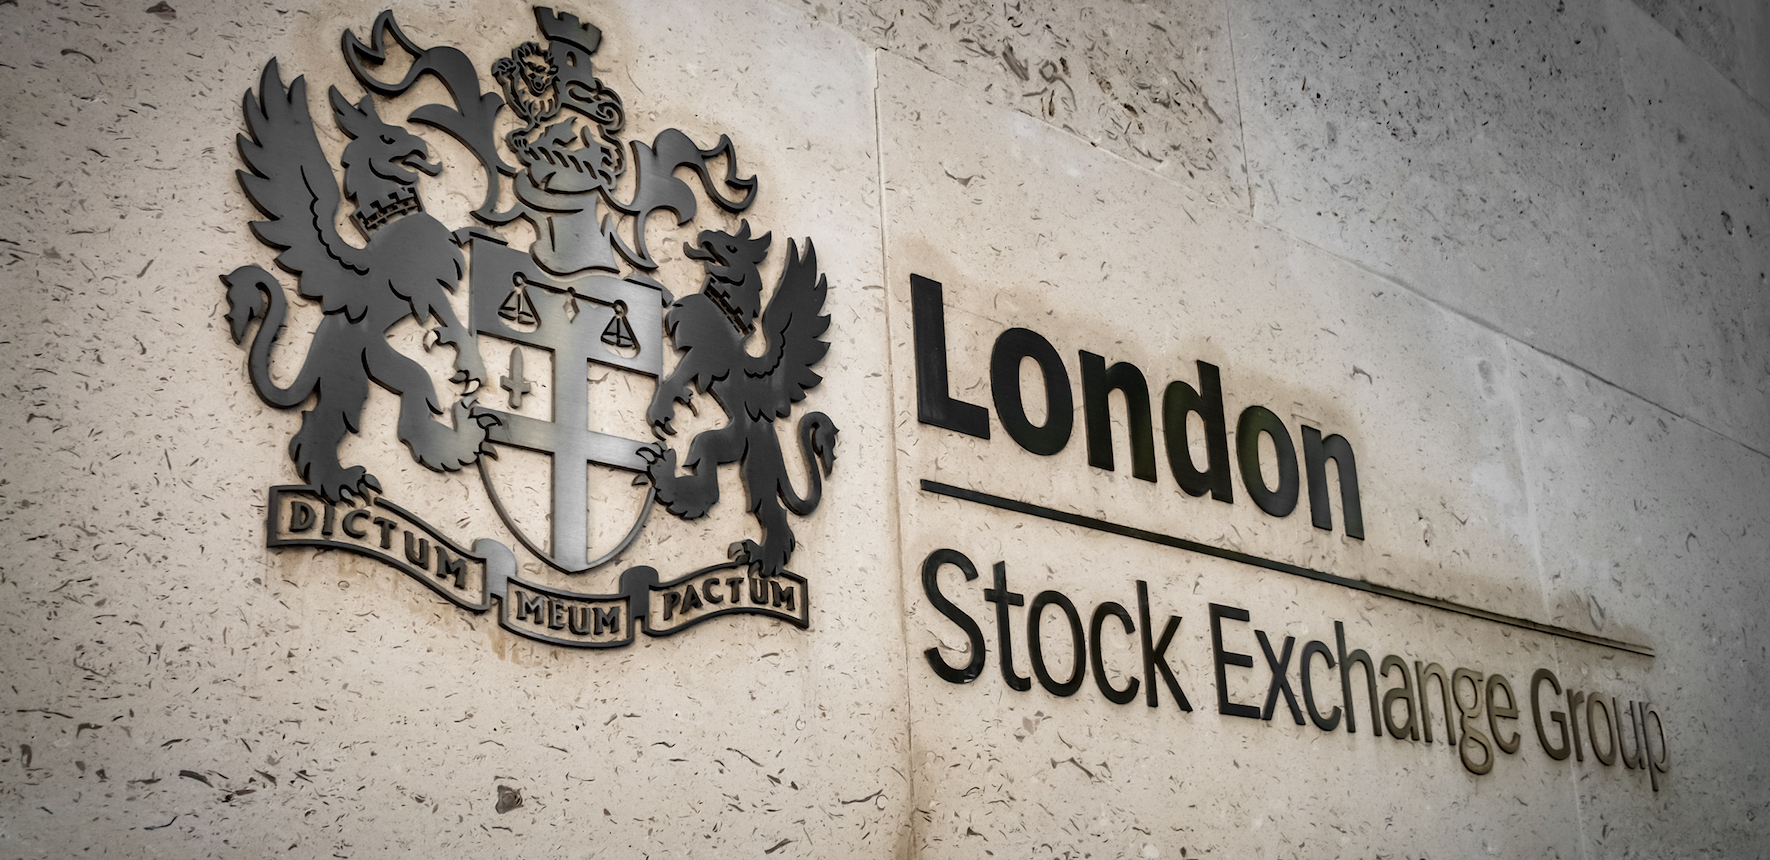 London Stock Exchange Group is Using Blockchain to Record Unlisted Securities - CoinDesk